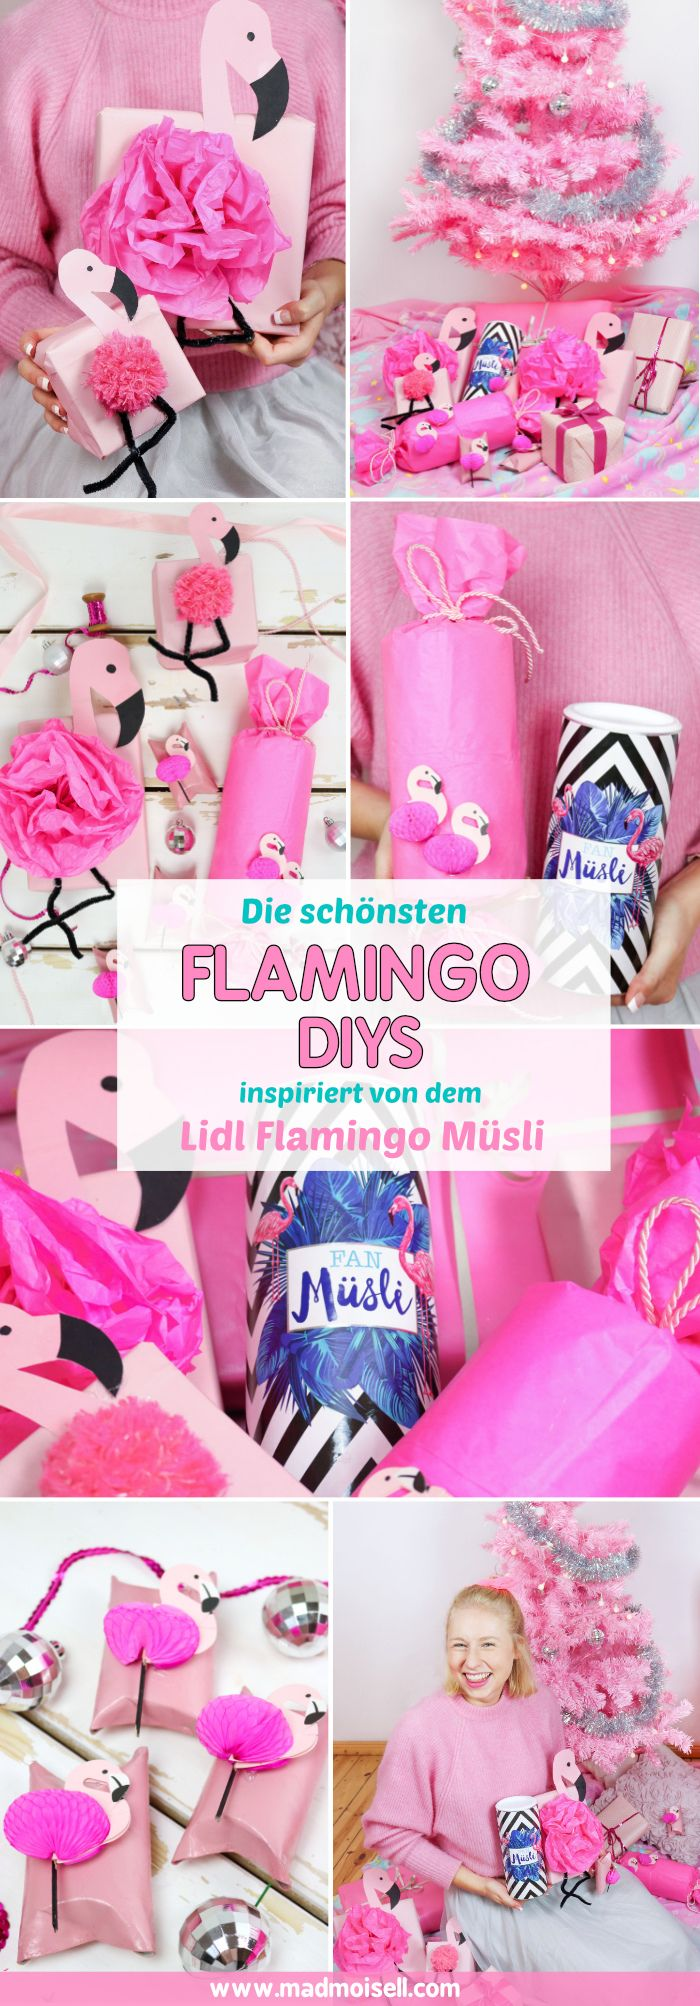 diy flamingo geschenkverpackung basteln 3 kreative geschenk ideen diy pinterest flamingo. Black Bedroom Furniture Sets. Home Design Ideas